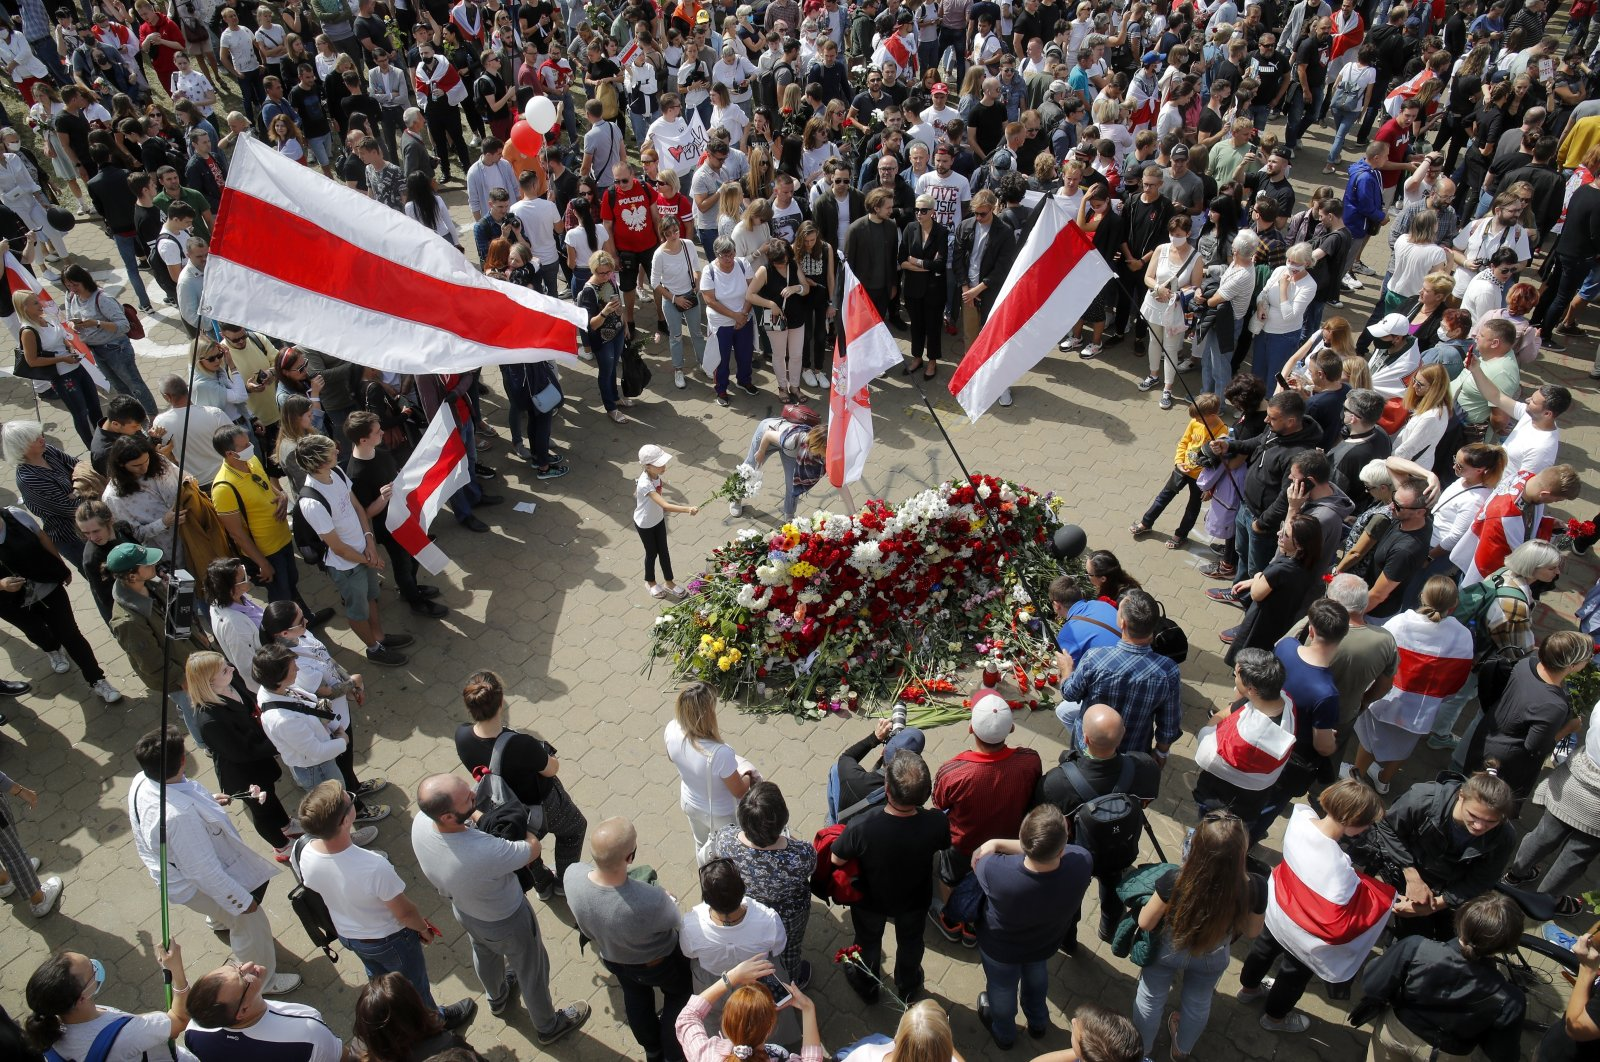 People with old Belarusian National flags lay flowers as they gather at the place where Alexander Taraikovsky died amid the clashes protesting the election results, during his civil funeral in Minsk, Belarus, Saturday, Aug. 15, 2020. (AP Photo)